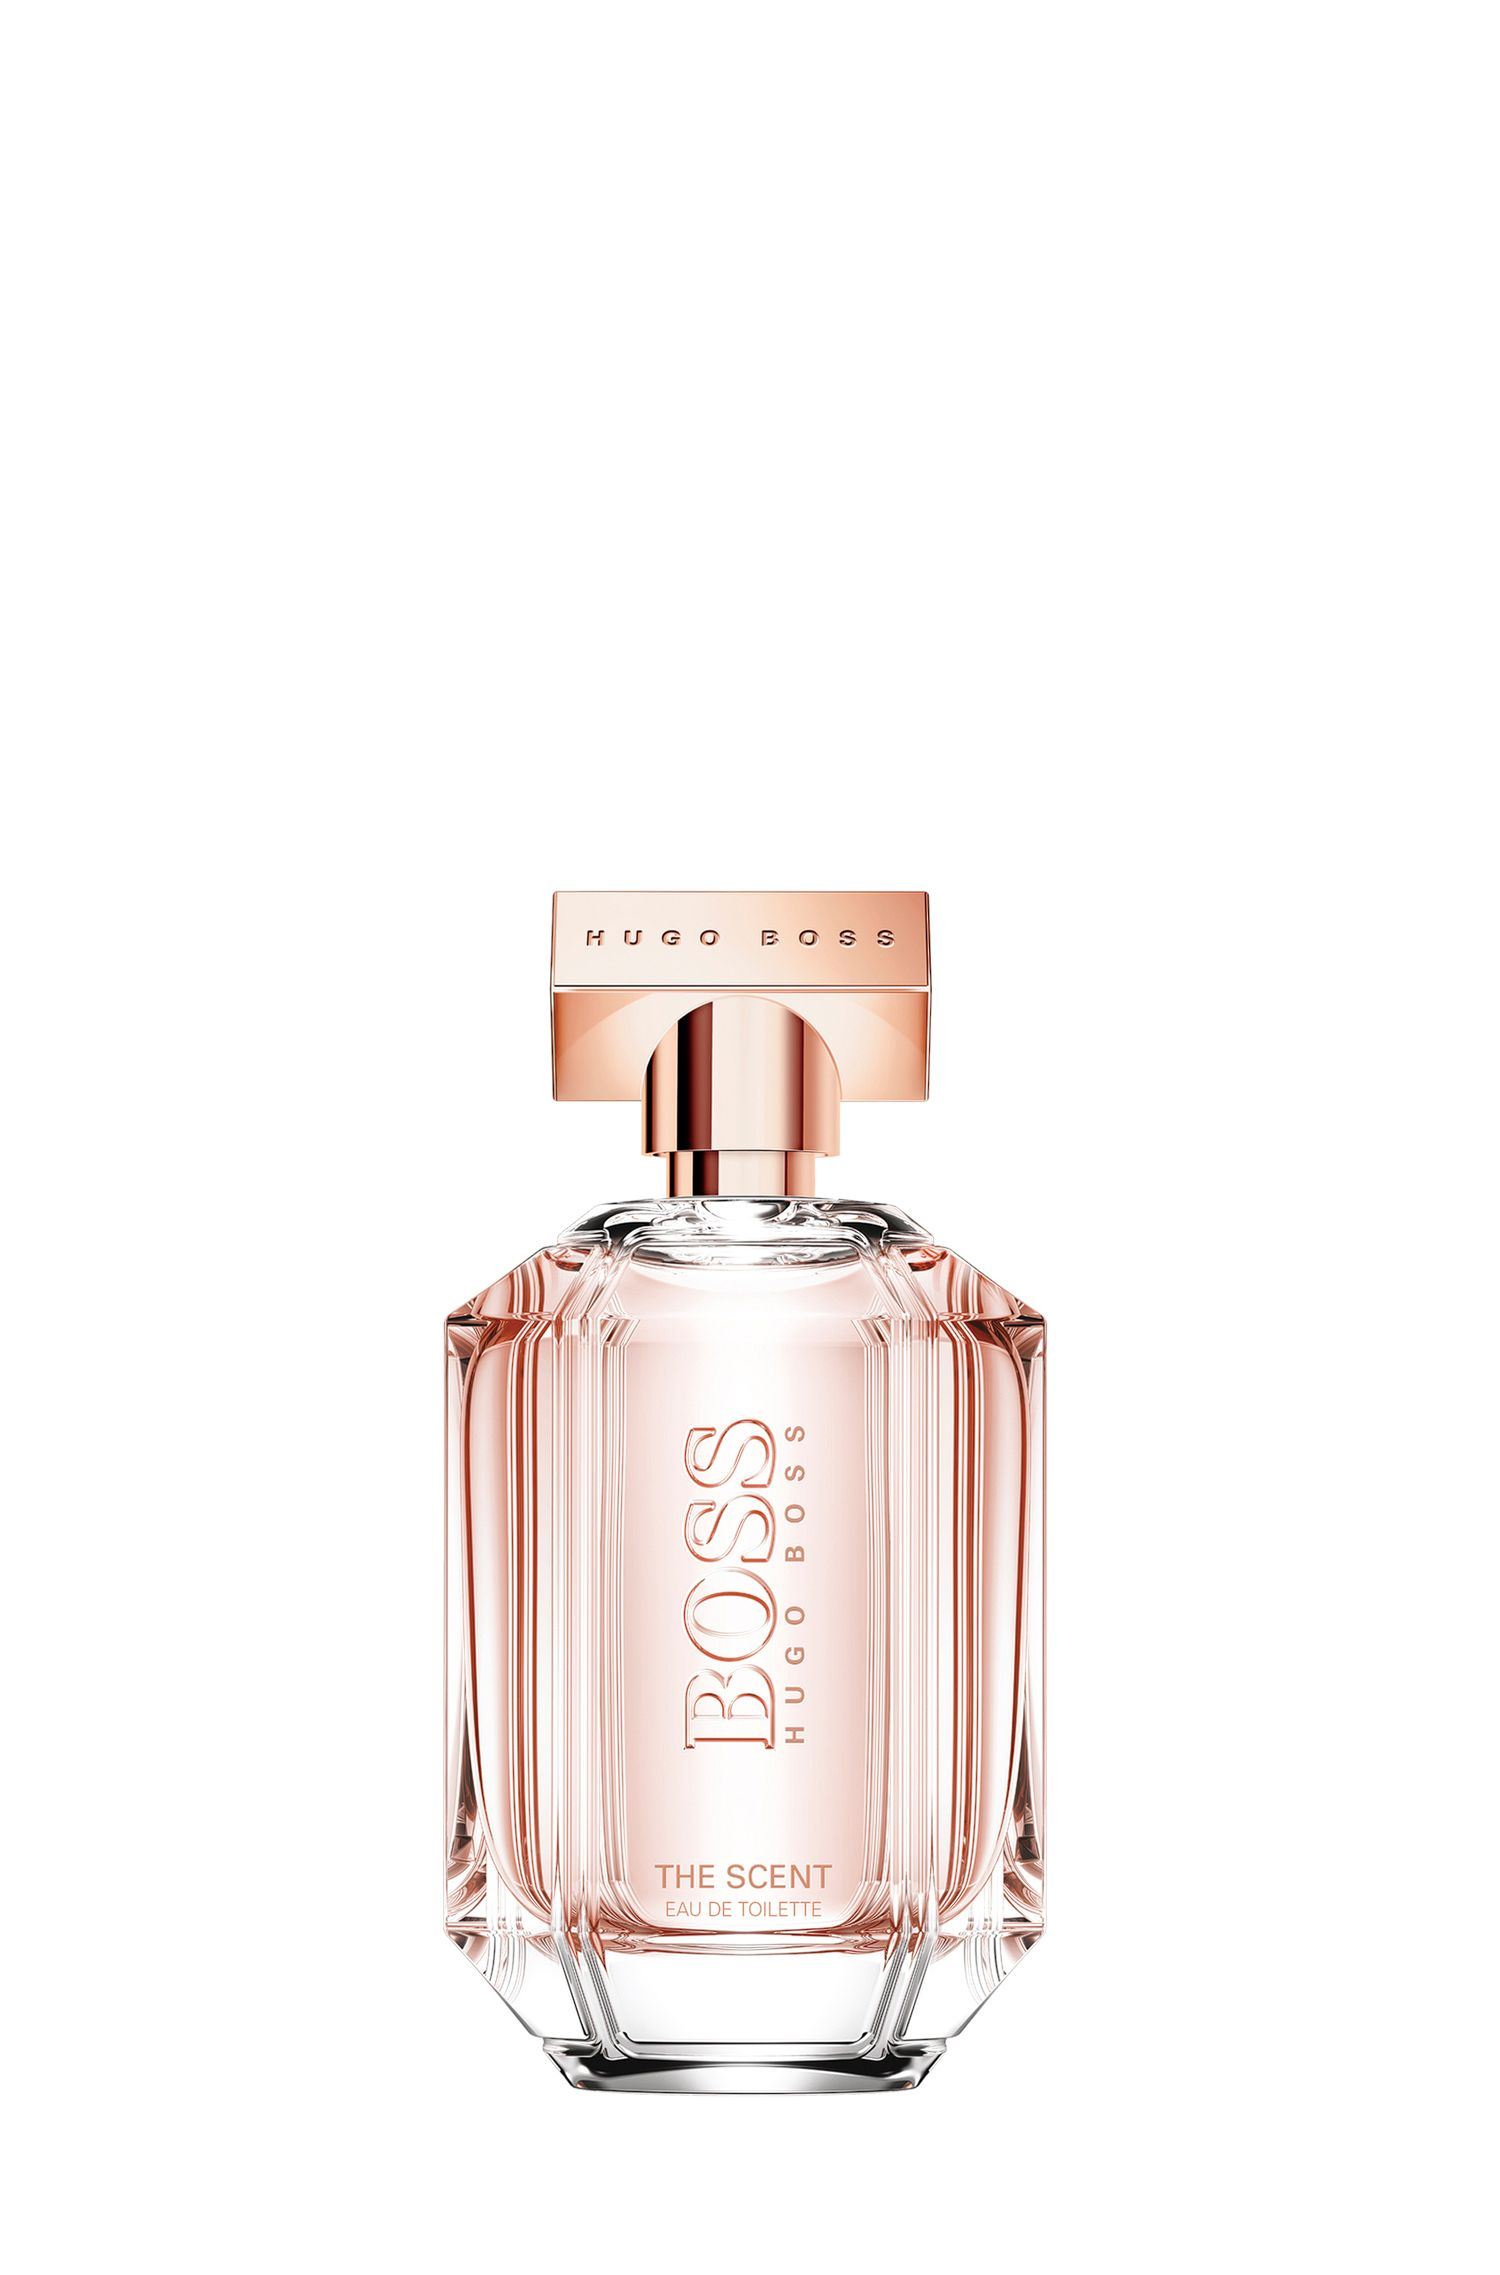 Eau de toilette BOSS The Scent For Her da 100 ml